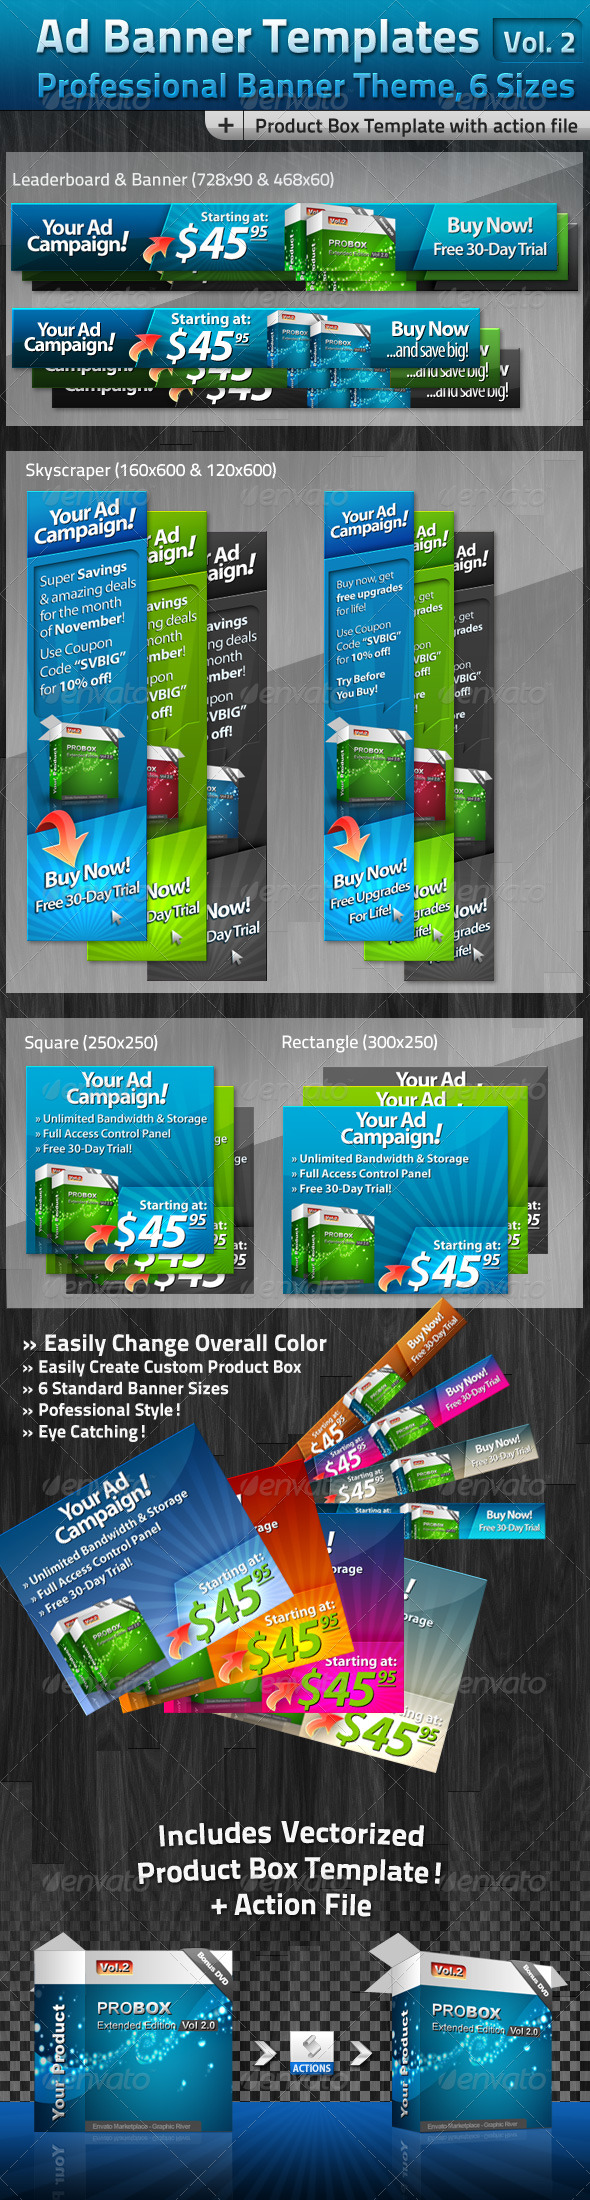 Ad Banner Template Collection Vol. 2 - Banners & Ads Web Elements